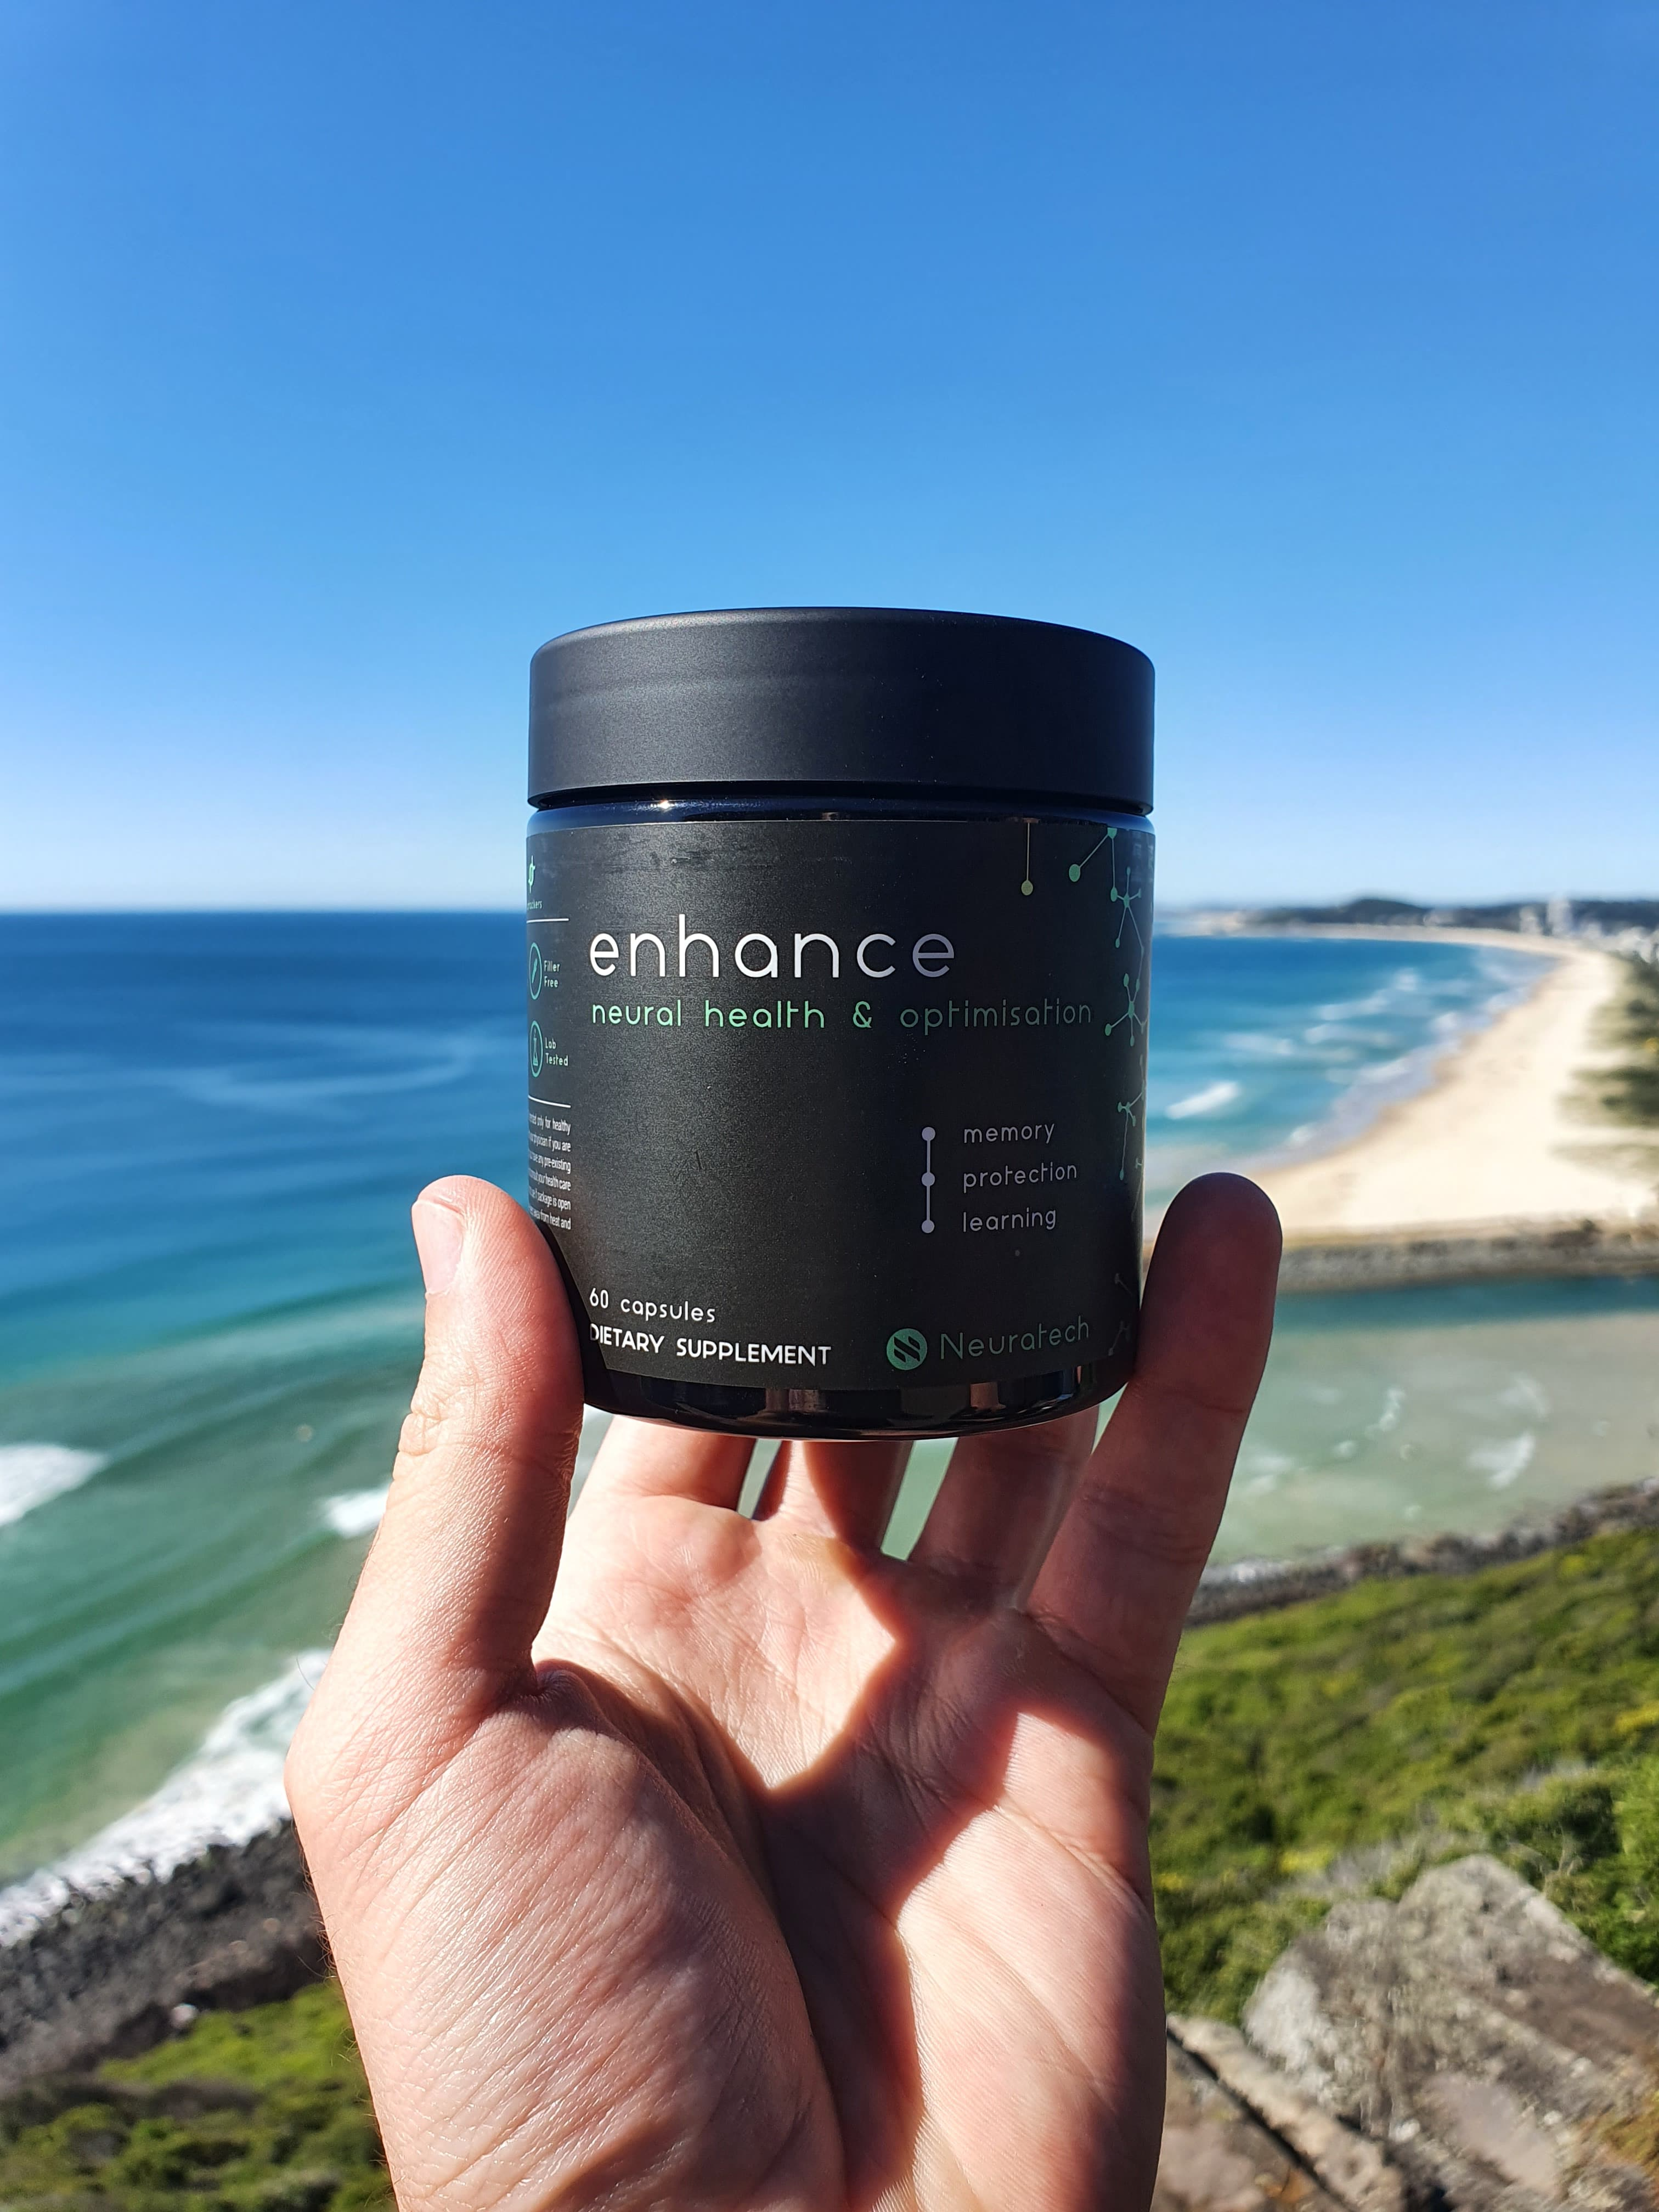 Aussie Start-up Neuratech Fueling the Cognitive Revolution Using Brain Nutrition